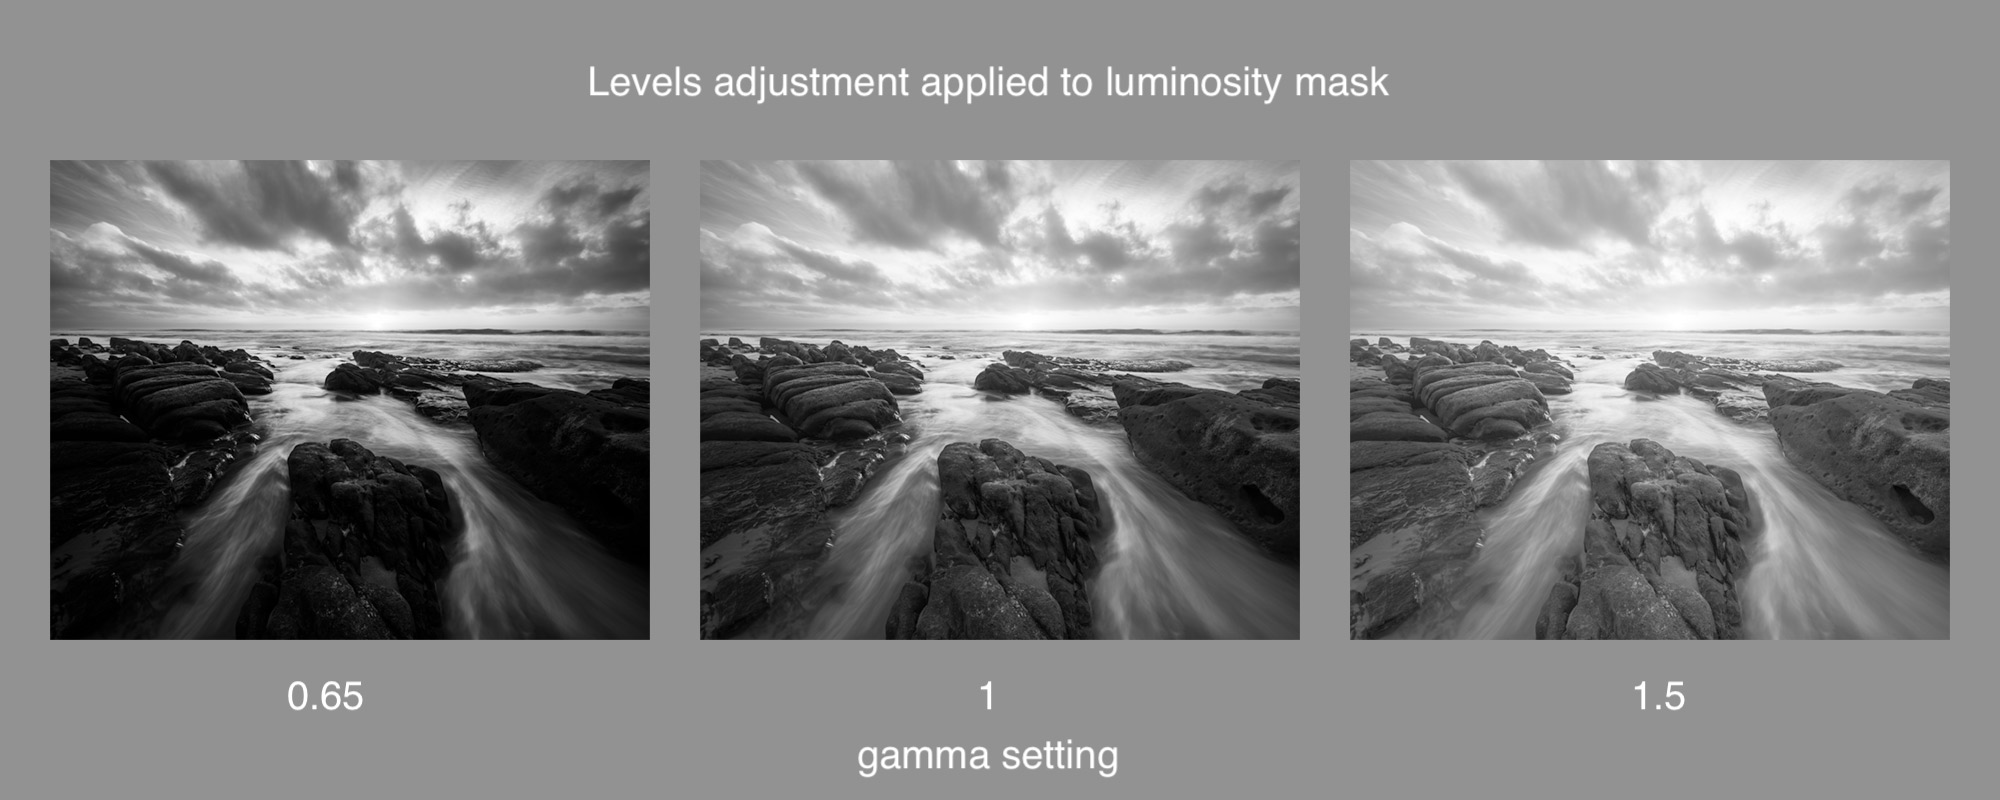 A lights luminosity mask with three different levels adjustments applied